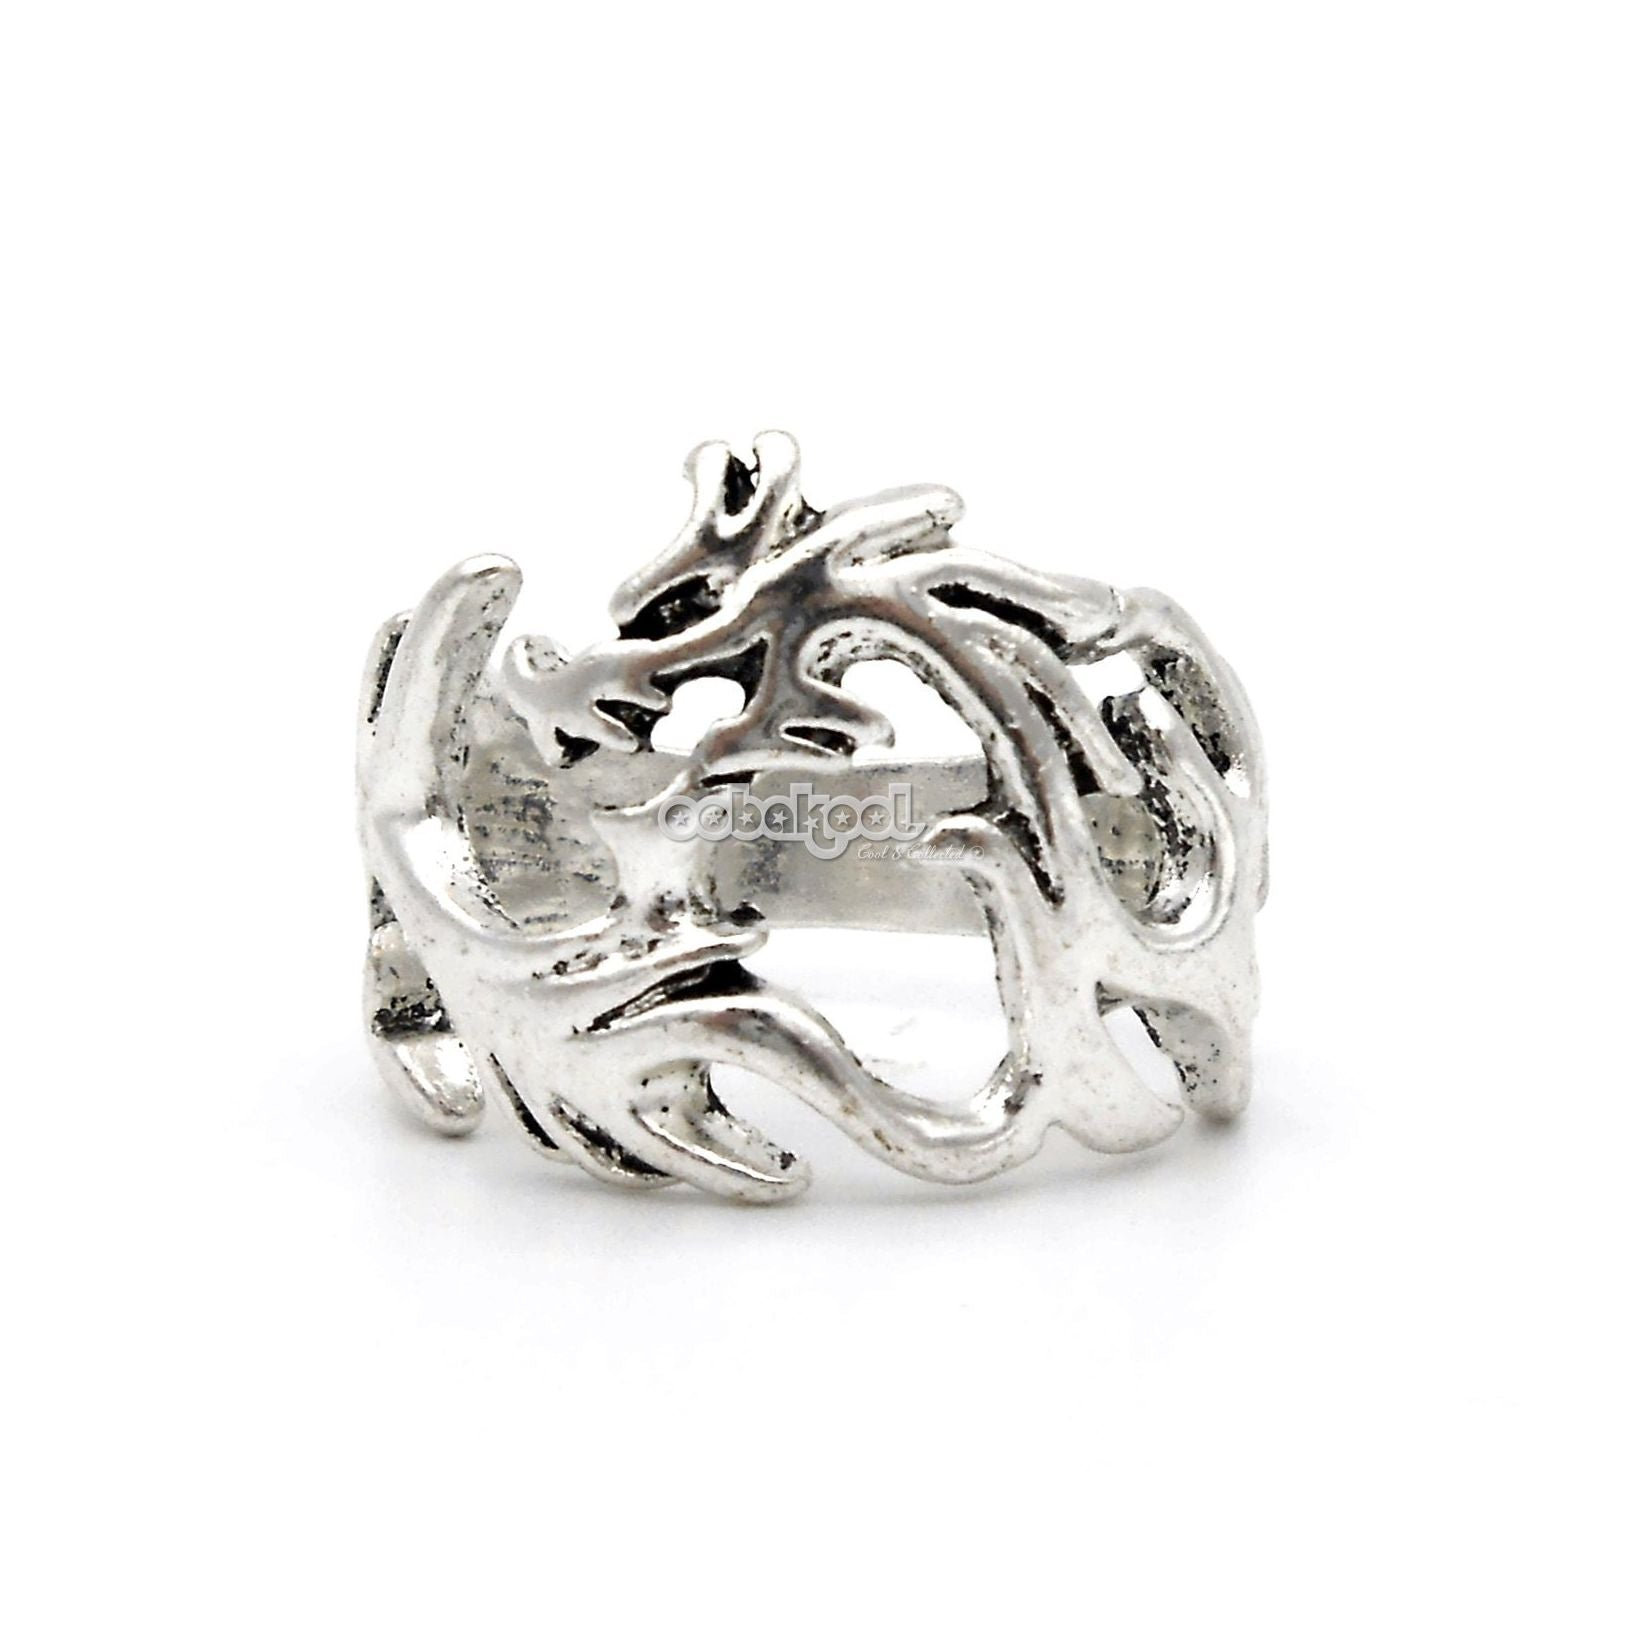 Mythical Creatures / Dragon Ring / Stainless Steel - Size 9